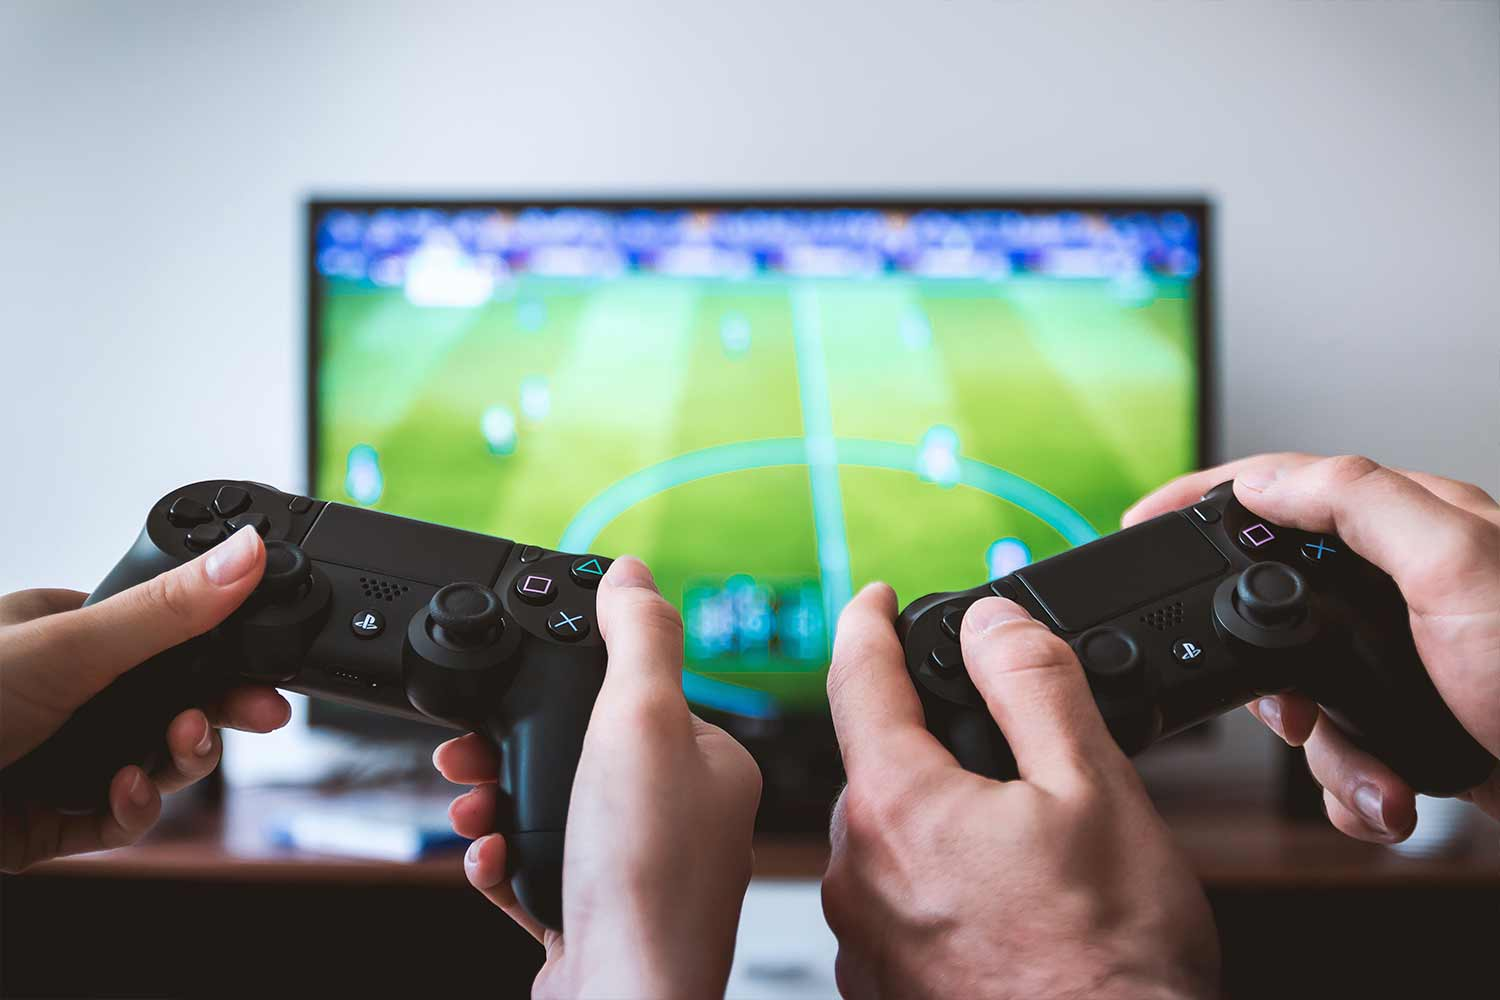 video-game-controllers-with-tv-in-background.jpg